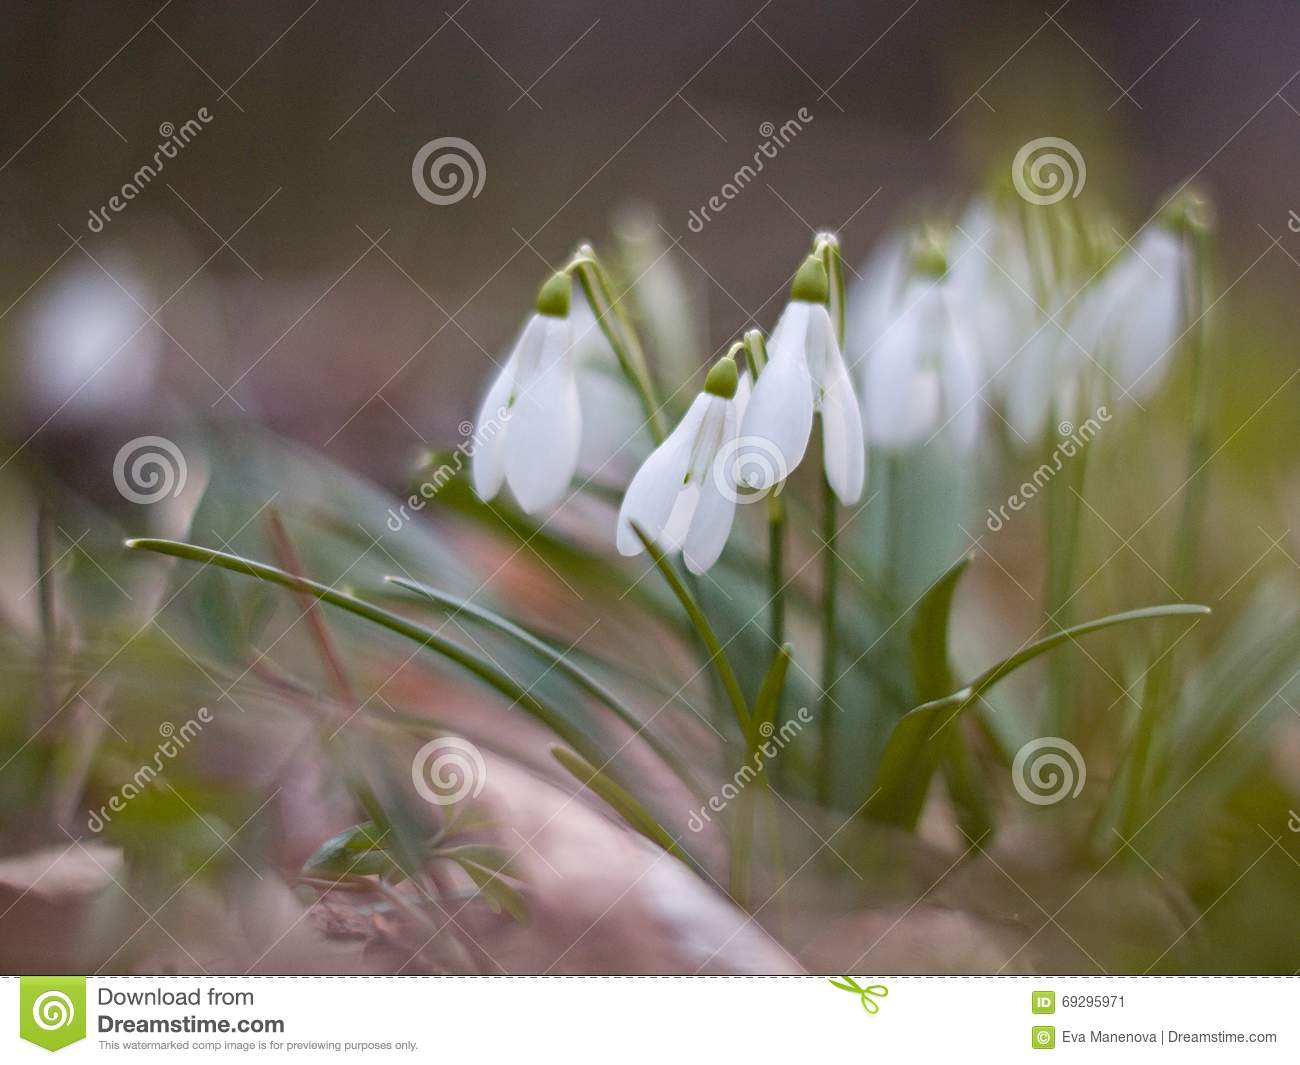 White snowdrops blooming on the hillside